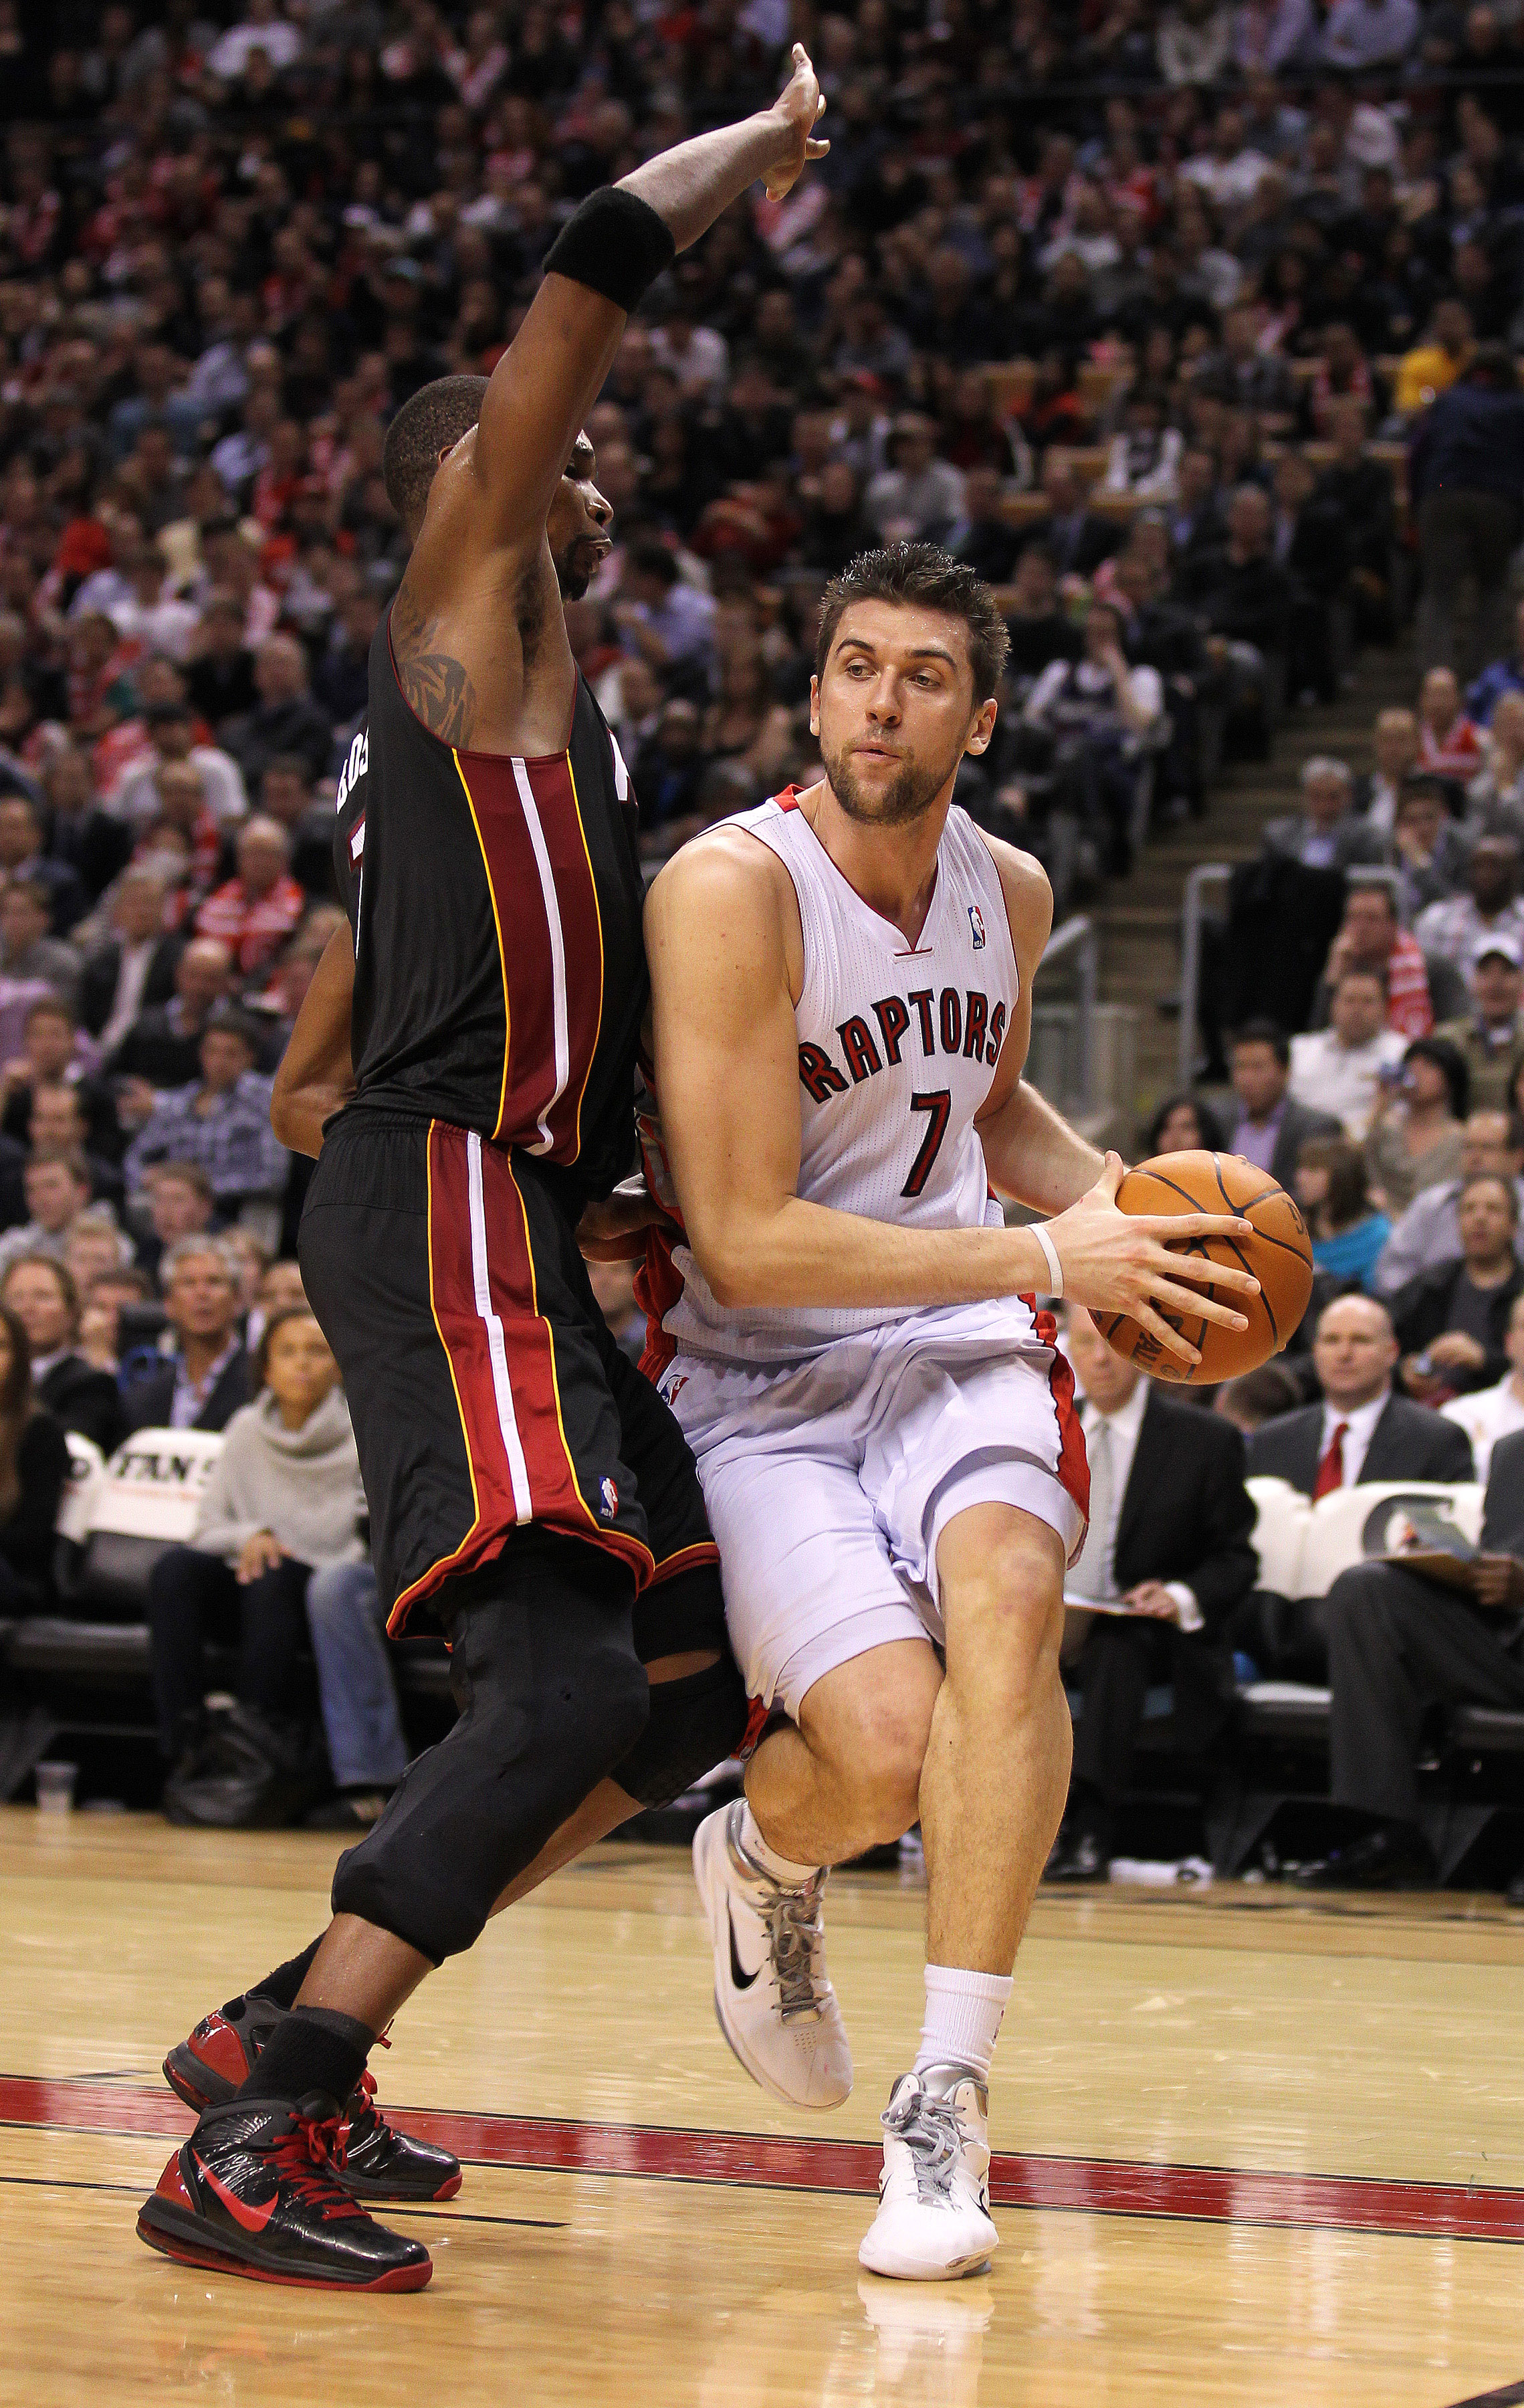 TORONTO, CANADA - FEBRUARY 16:  Chris Bosh #1 of the Miami Heat tries to defend against Andrea Bargnani #7 of the Toronto Raptors in a game on February 16, 2011 at the Air Canada Centre in Toronto, Canada. The Heat defeated the Raptors 103-95. (Photo by C